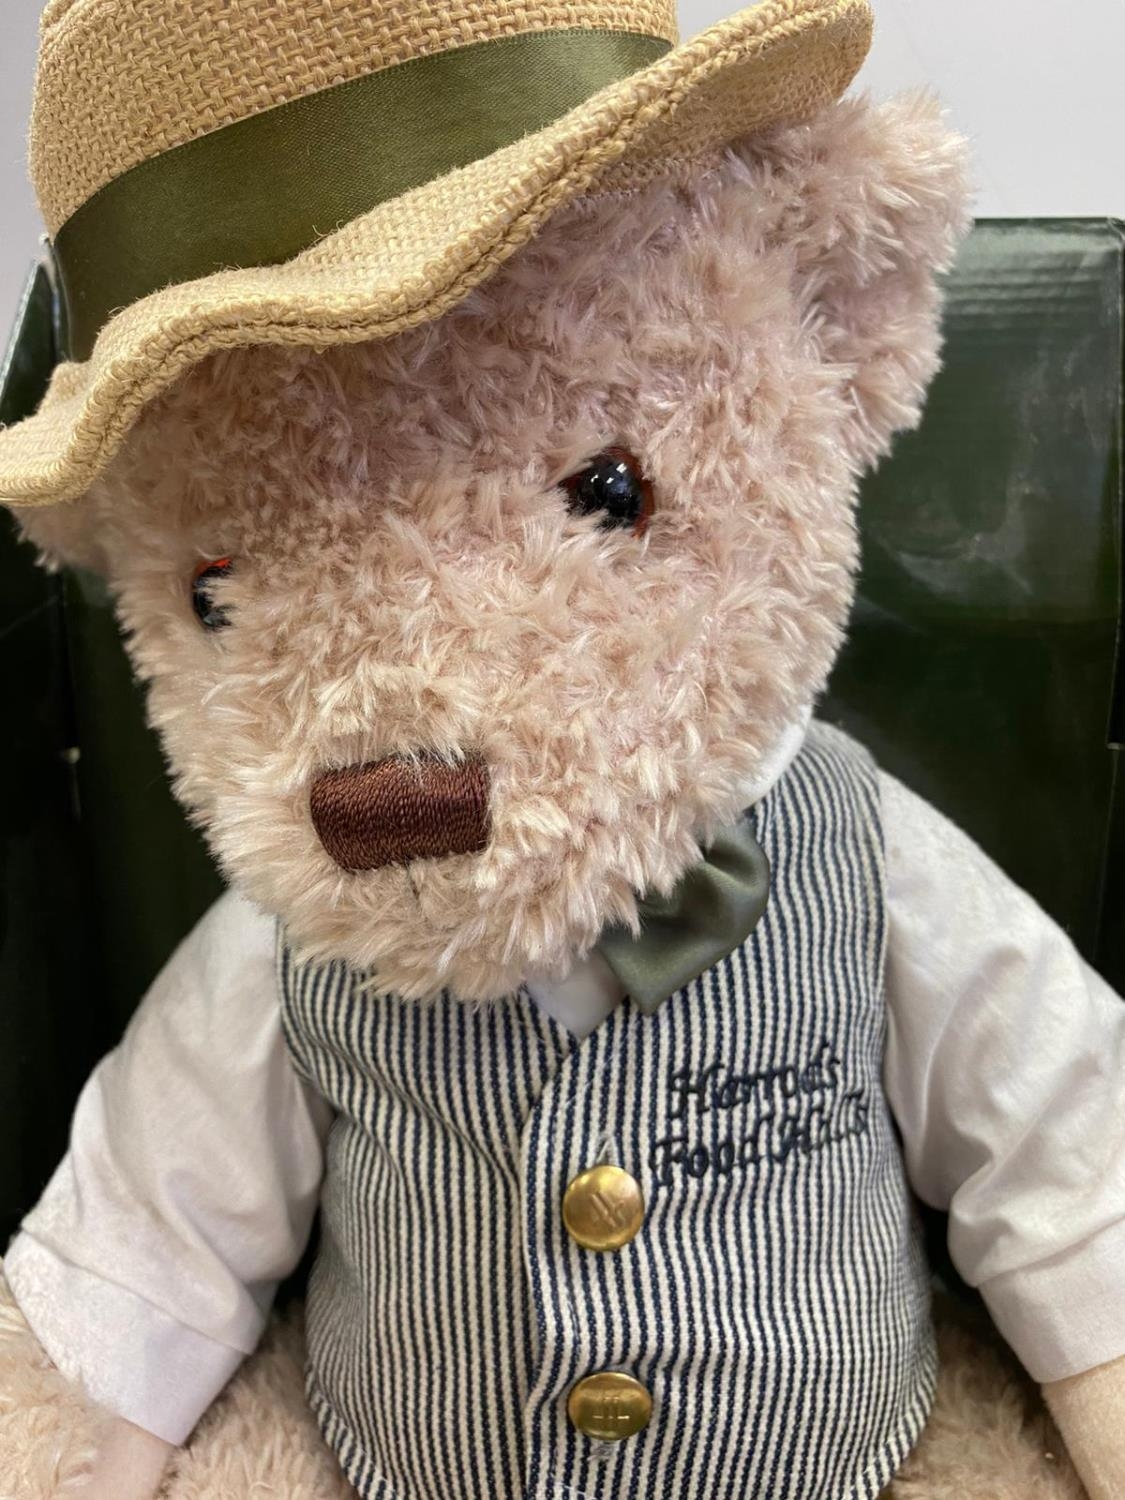 Harrods 2009 annual bear. Whose name is William. Still in original box. 50cm in height approx. - Image 2 of 3